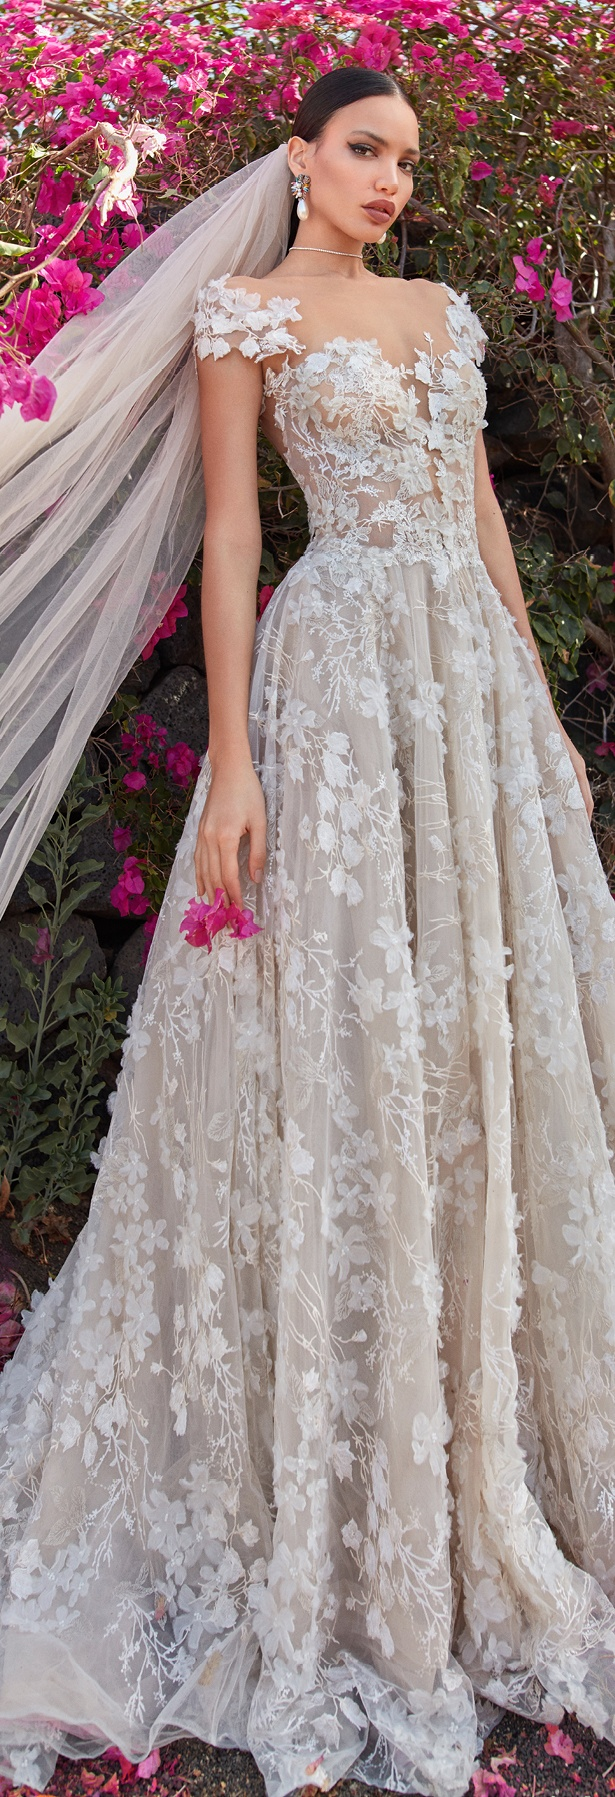 Galia Lahav Couture Bridal Fall 2018 Collection | Hey Wedding Lady